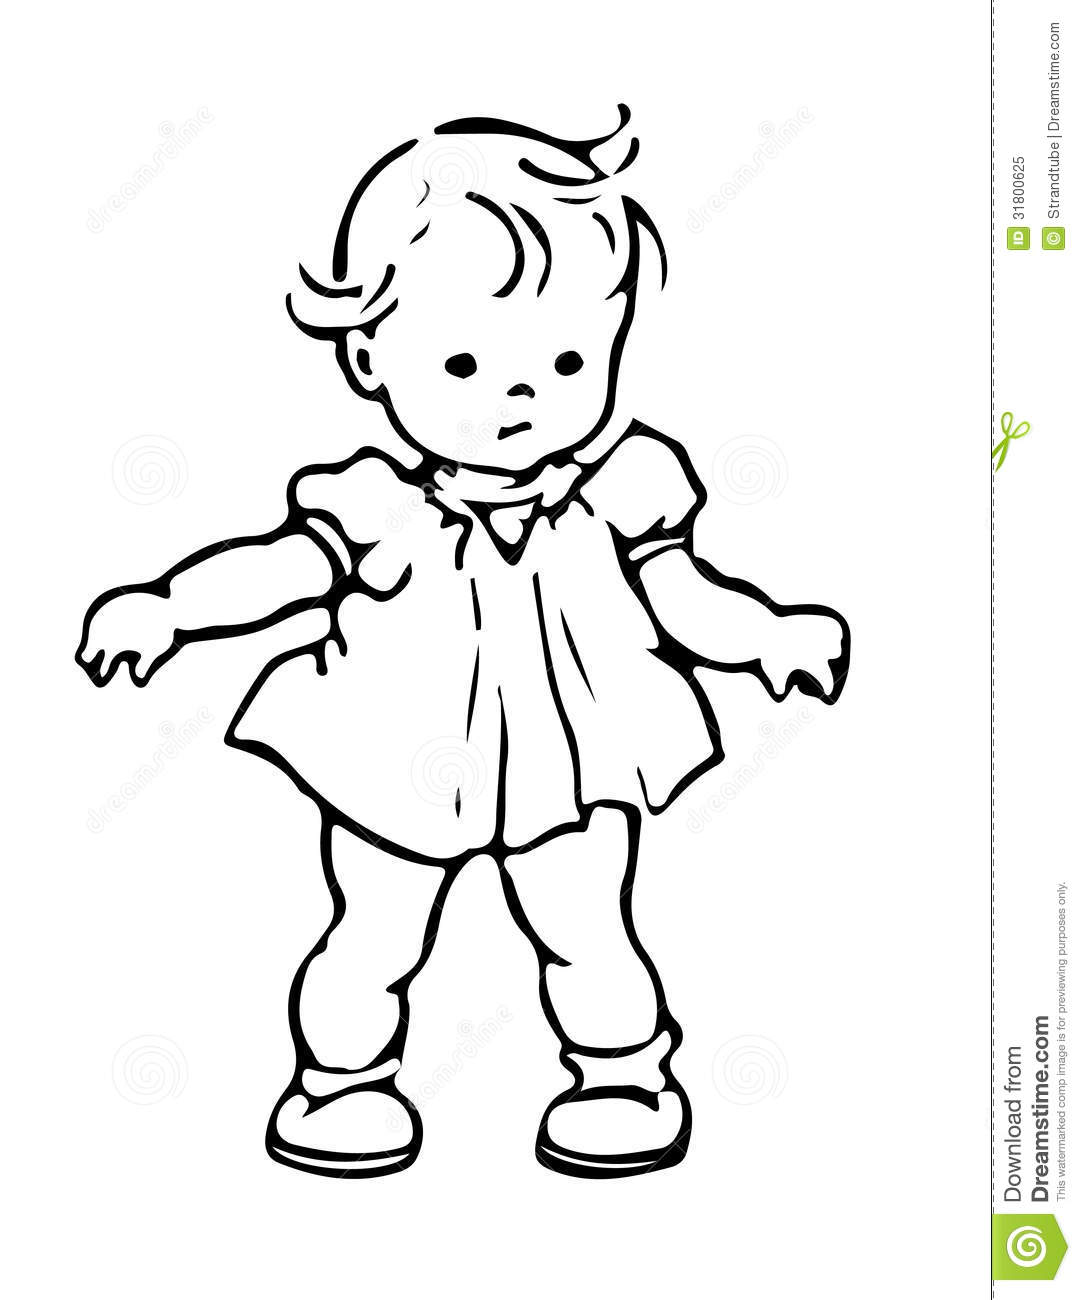 Line Art Baby : Royalty free stock photo baby image